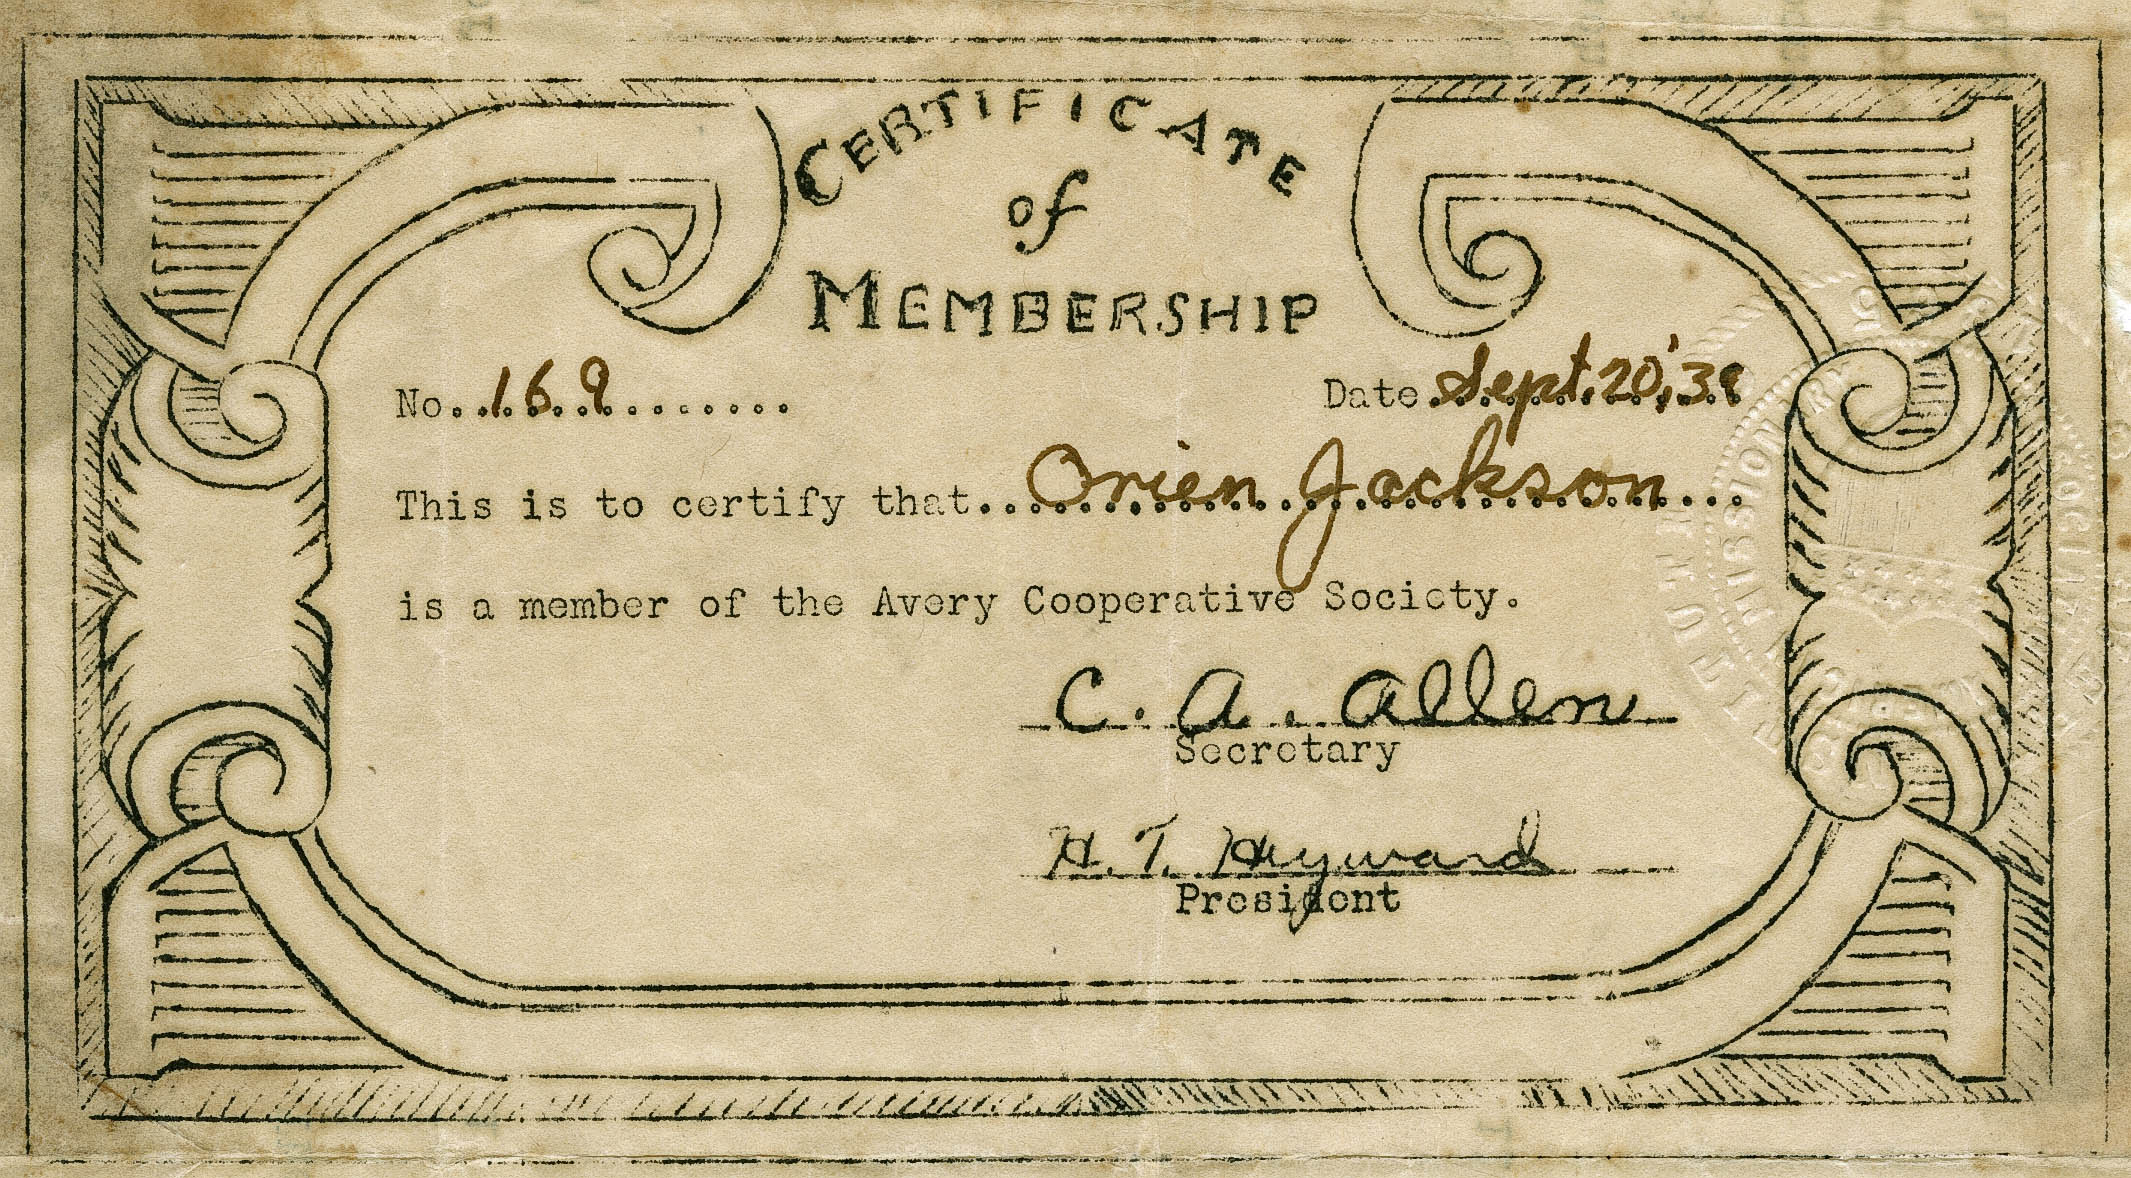 Membership certificate for the Avery Cooperative Society